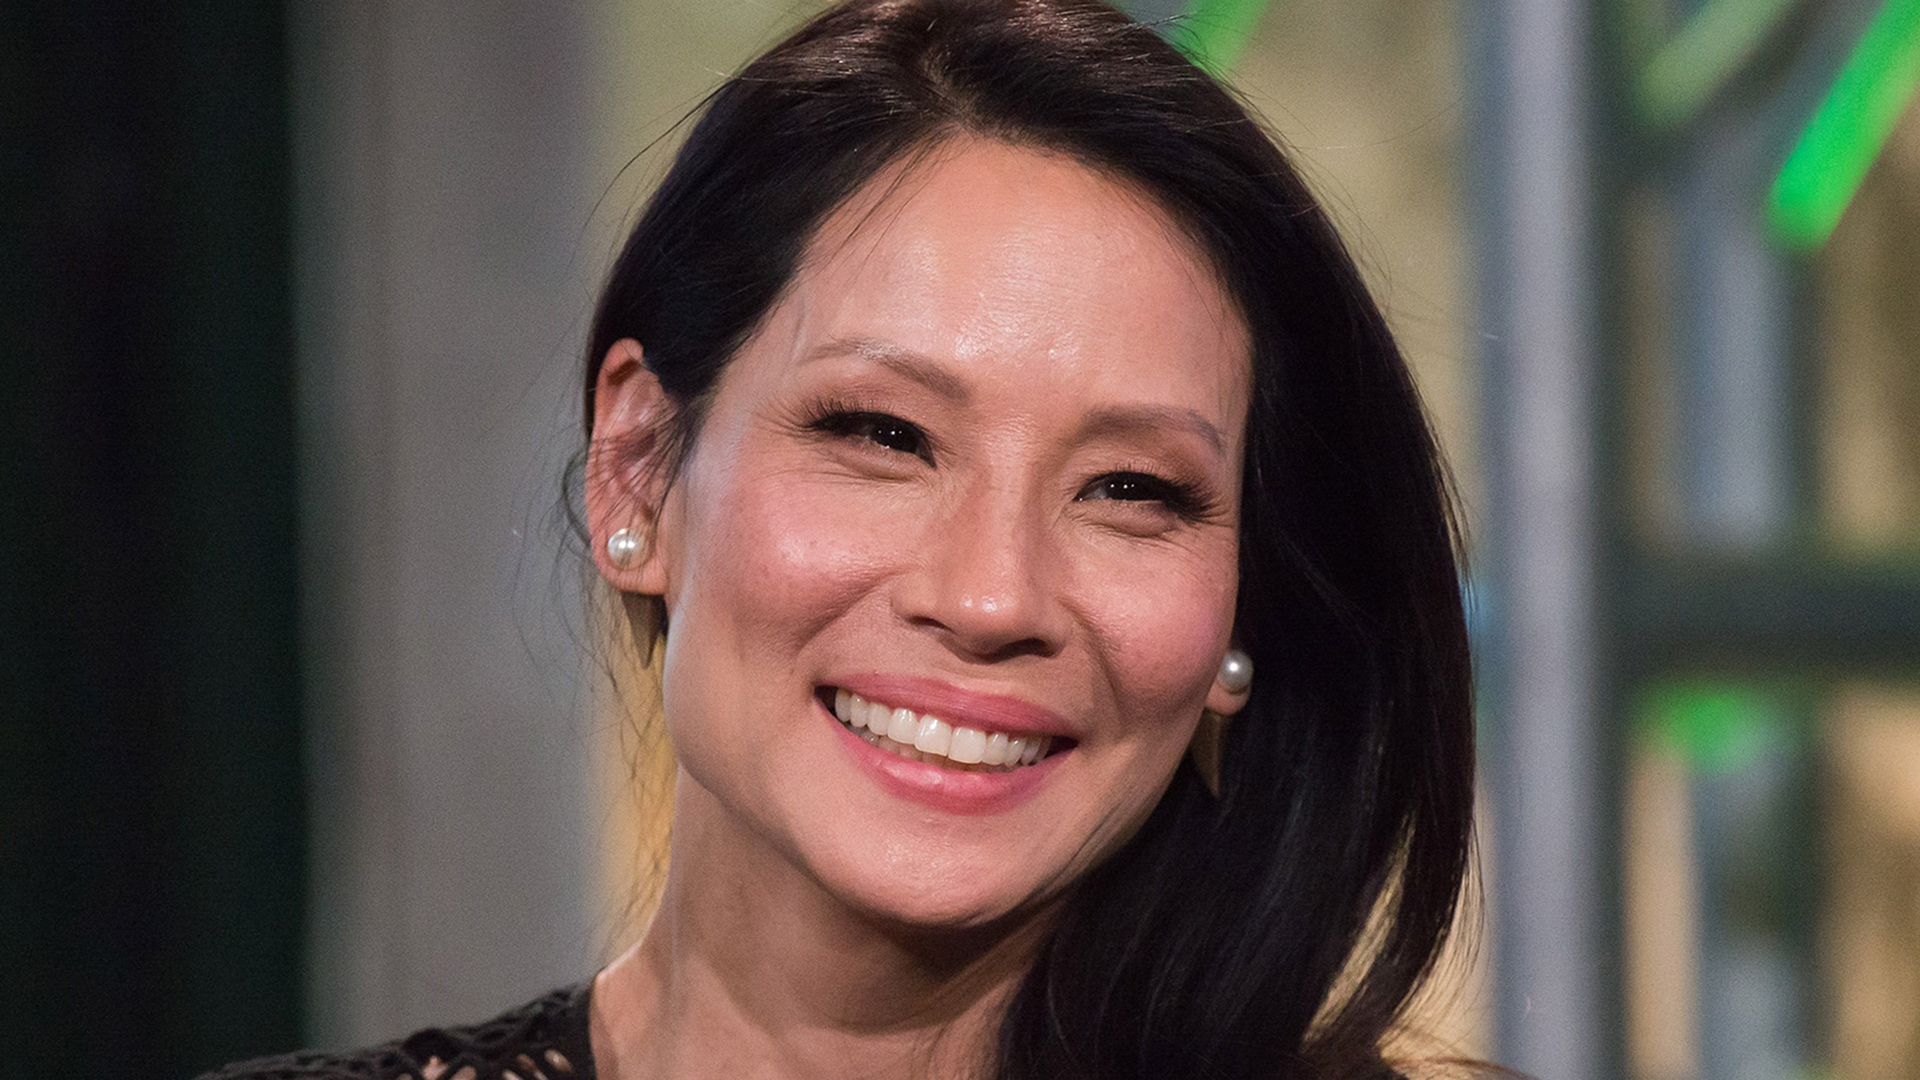 Lucy Liu opens up about becoming a mom: 'I asked for a lot of help' - TODAY.com